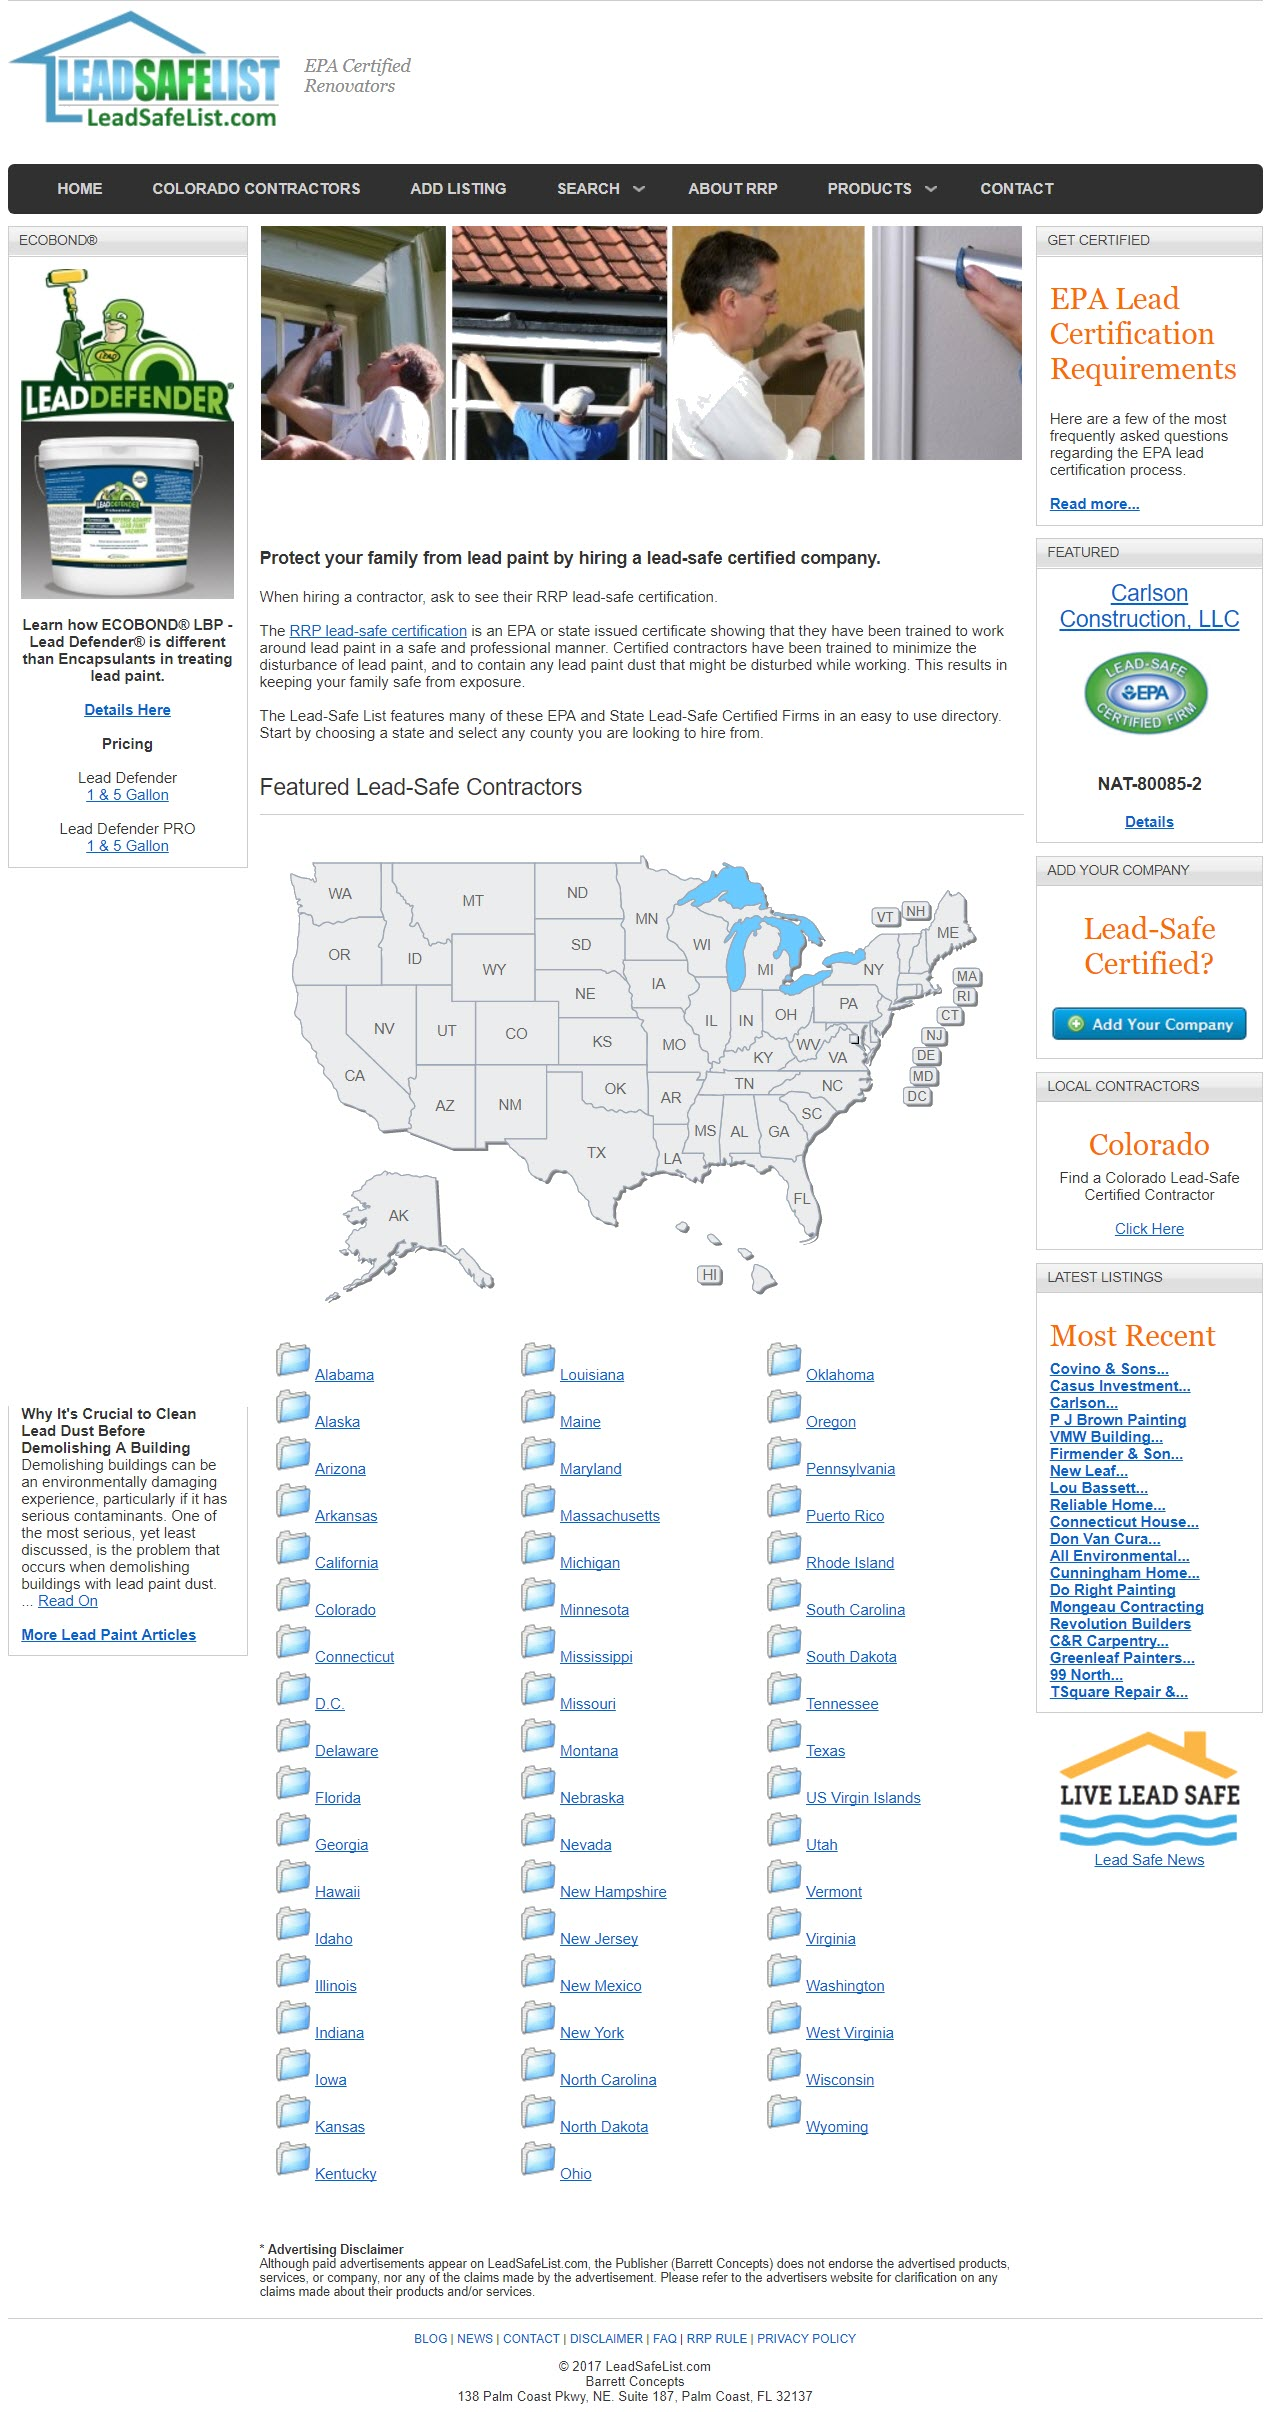 RRP Contractors by State LEad Safe List image